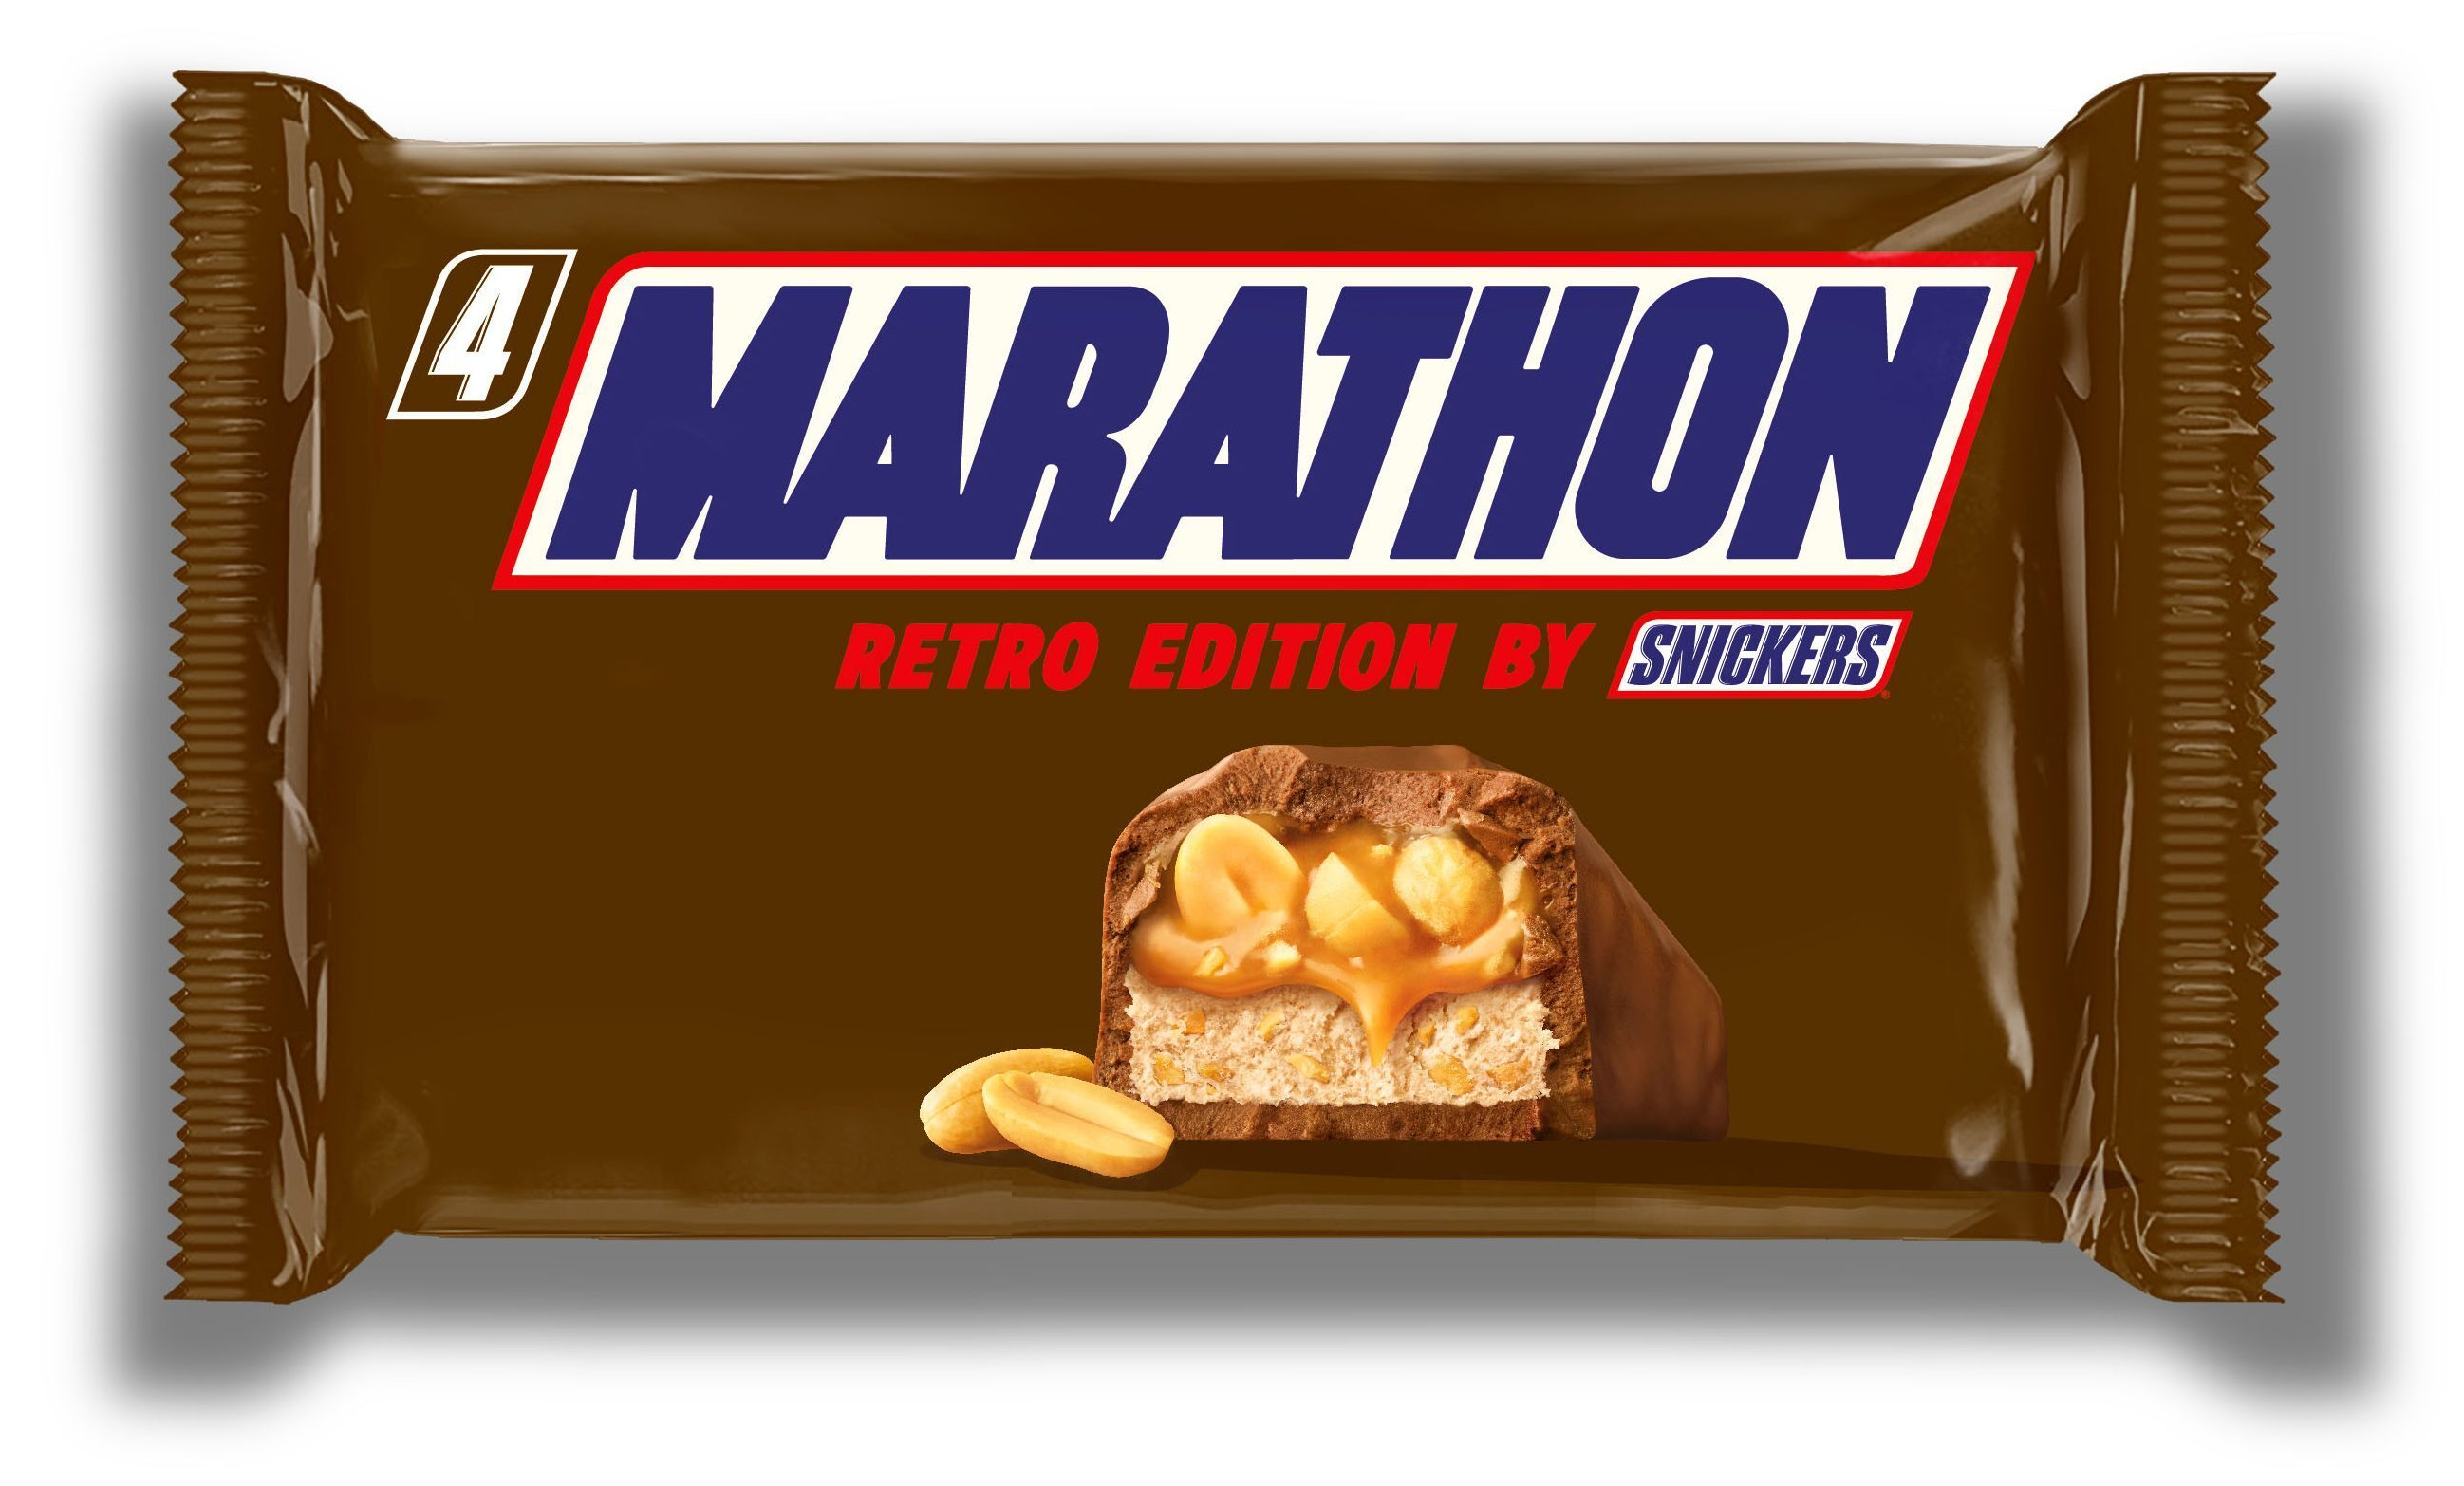 The Marathon bar packaging, which was replaced by Snickers